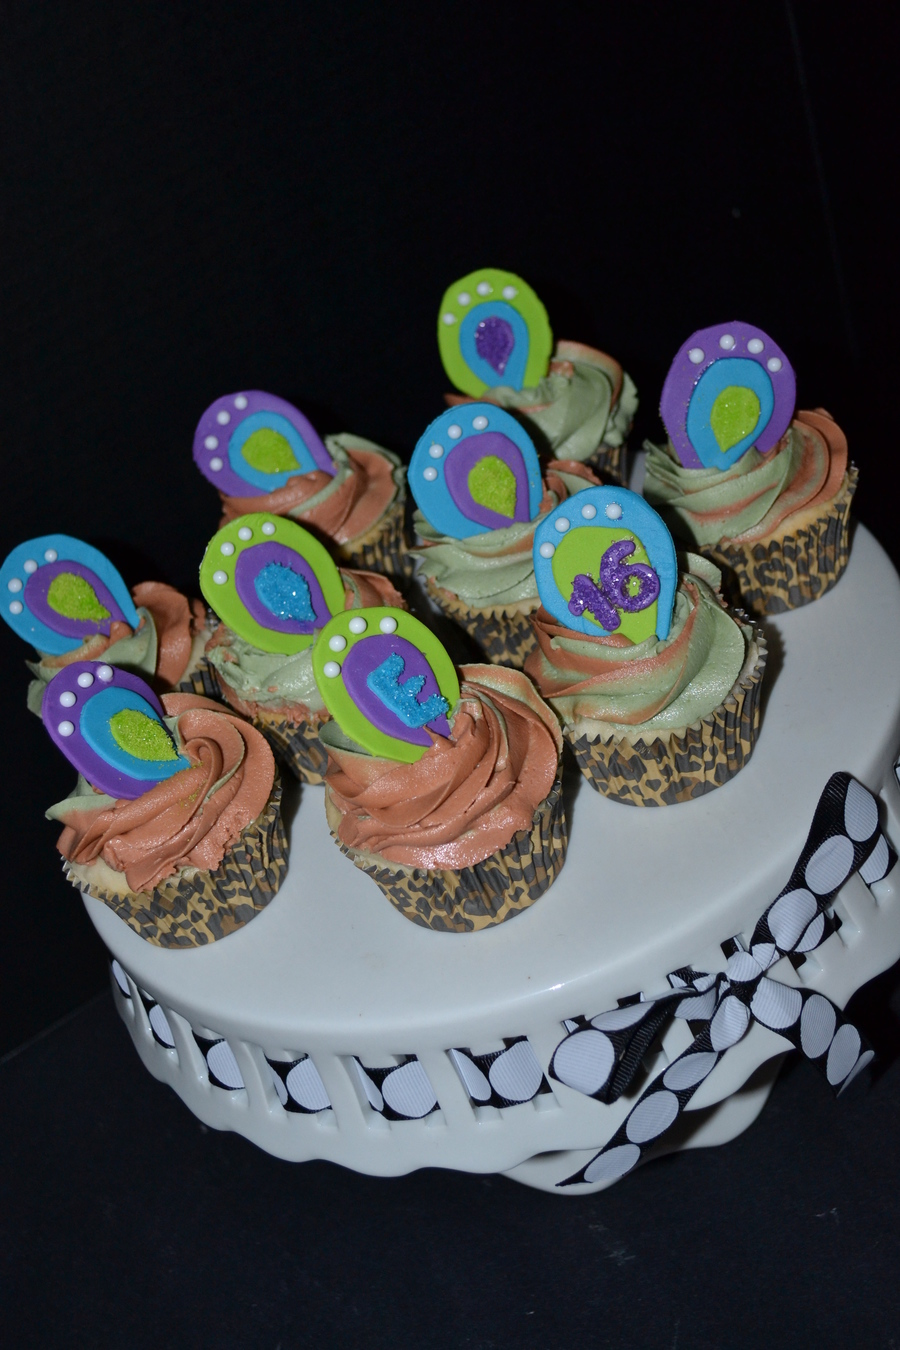 Pea Amp Cheetah Themed Cupcakes Lime Green Bright Blue Amp Purple on Cake Central